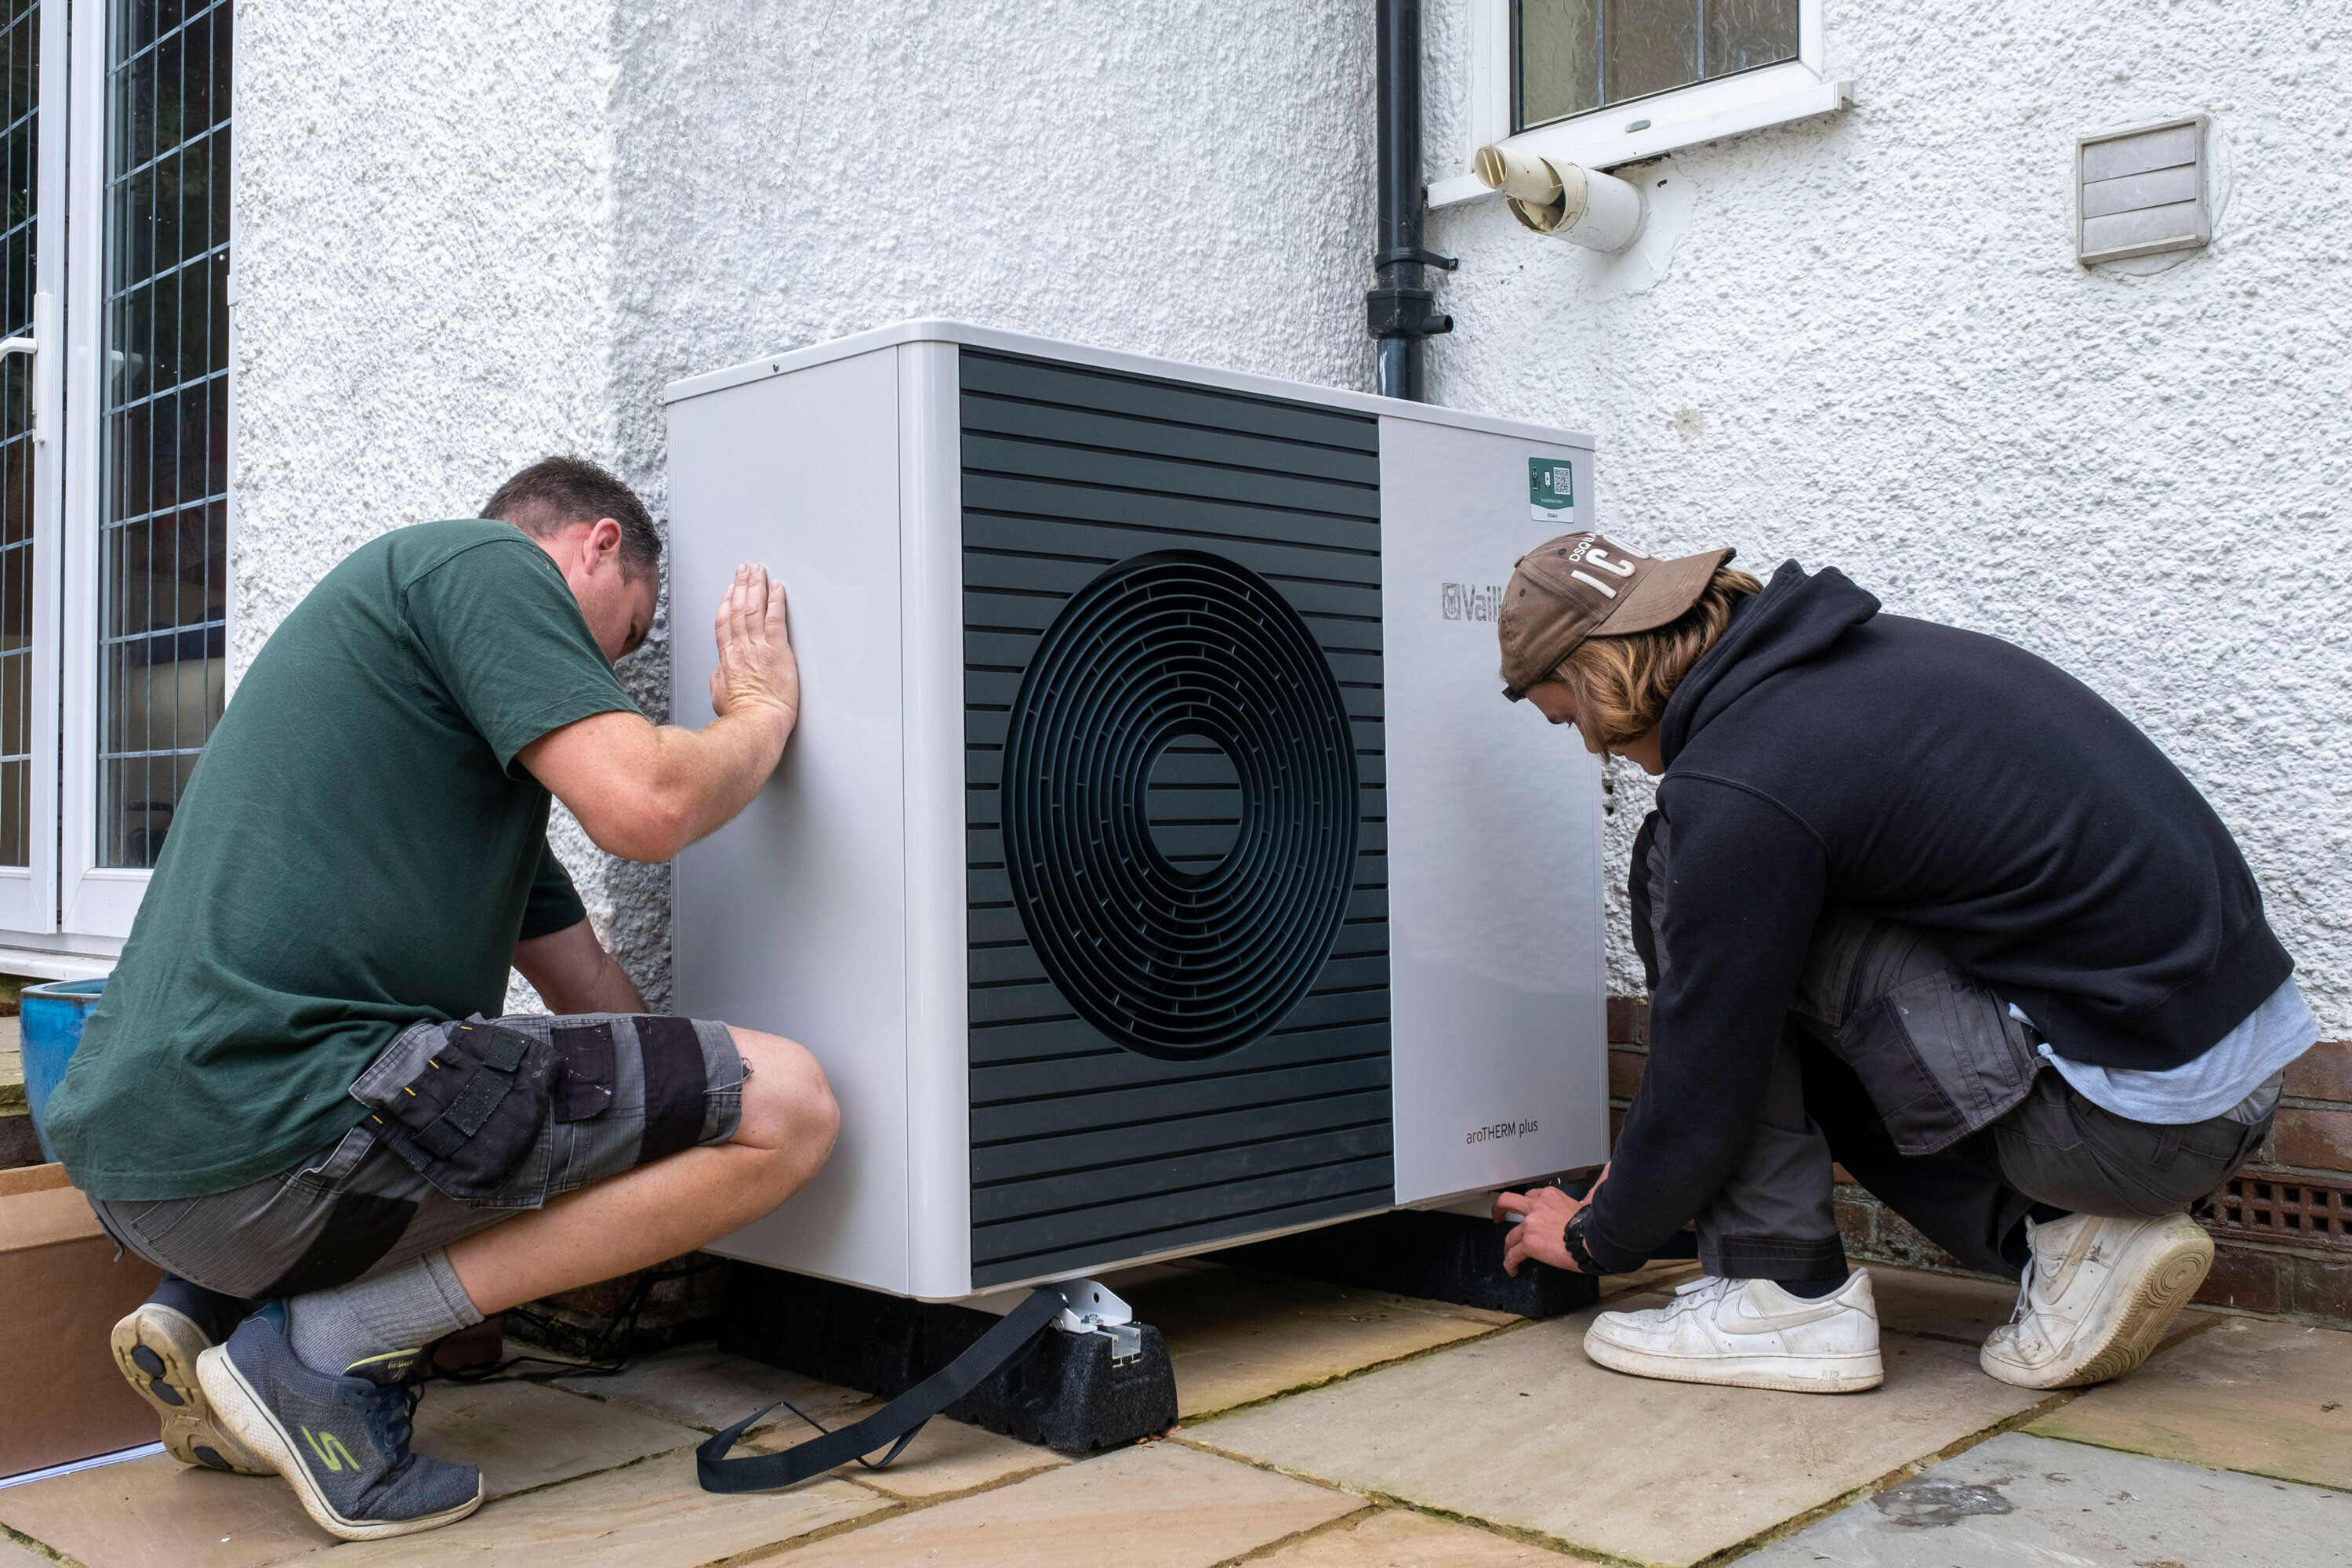 As gas prices soar, people are mulling alternatives to heating their homes. Here's what to know